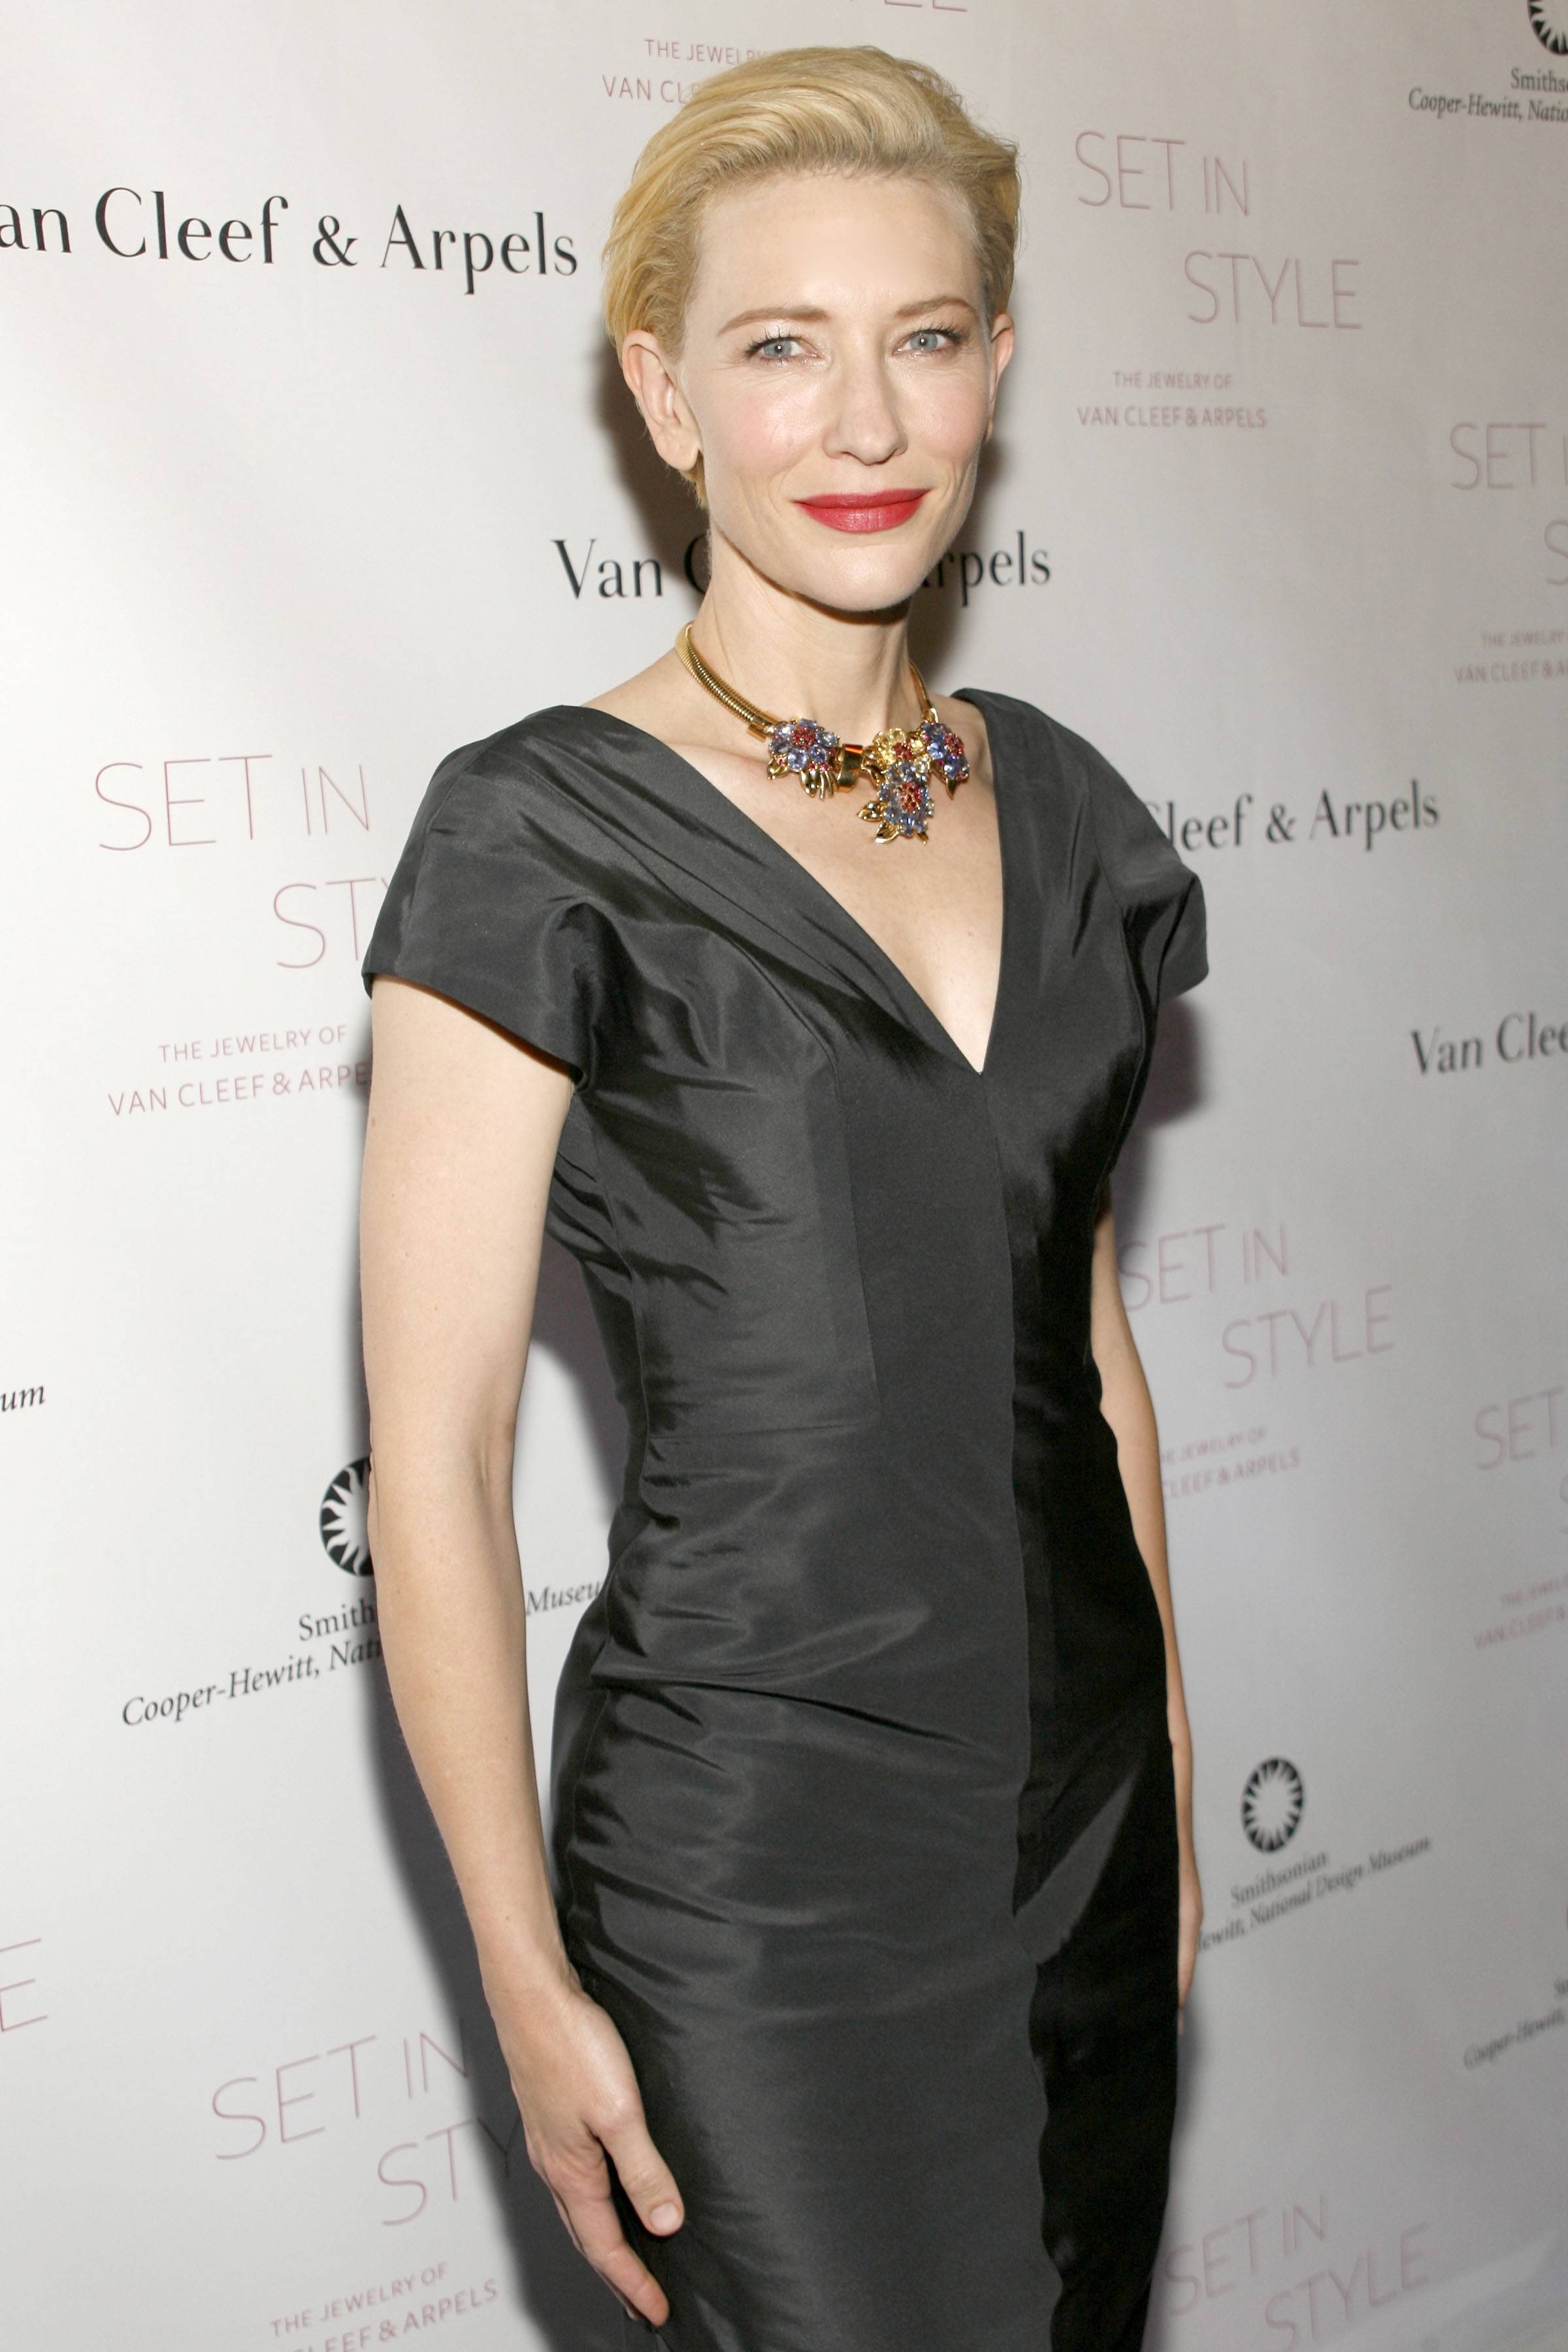 Dori's World: Van Cleef & Arpels Exhibition Opening Gala at the Cooper-Hewitt Museum